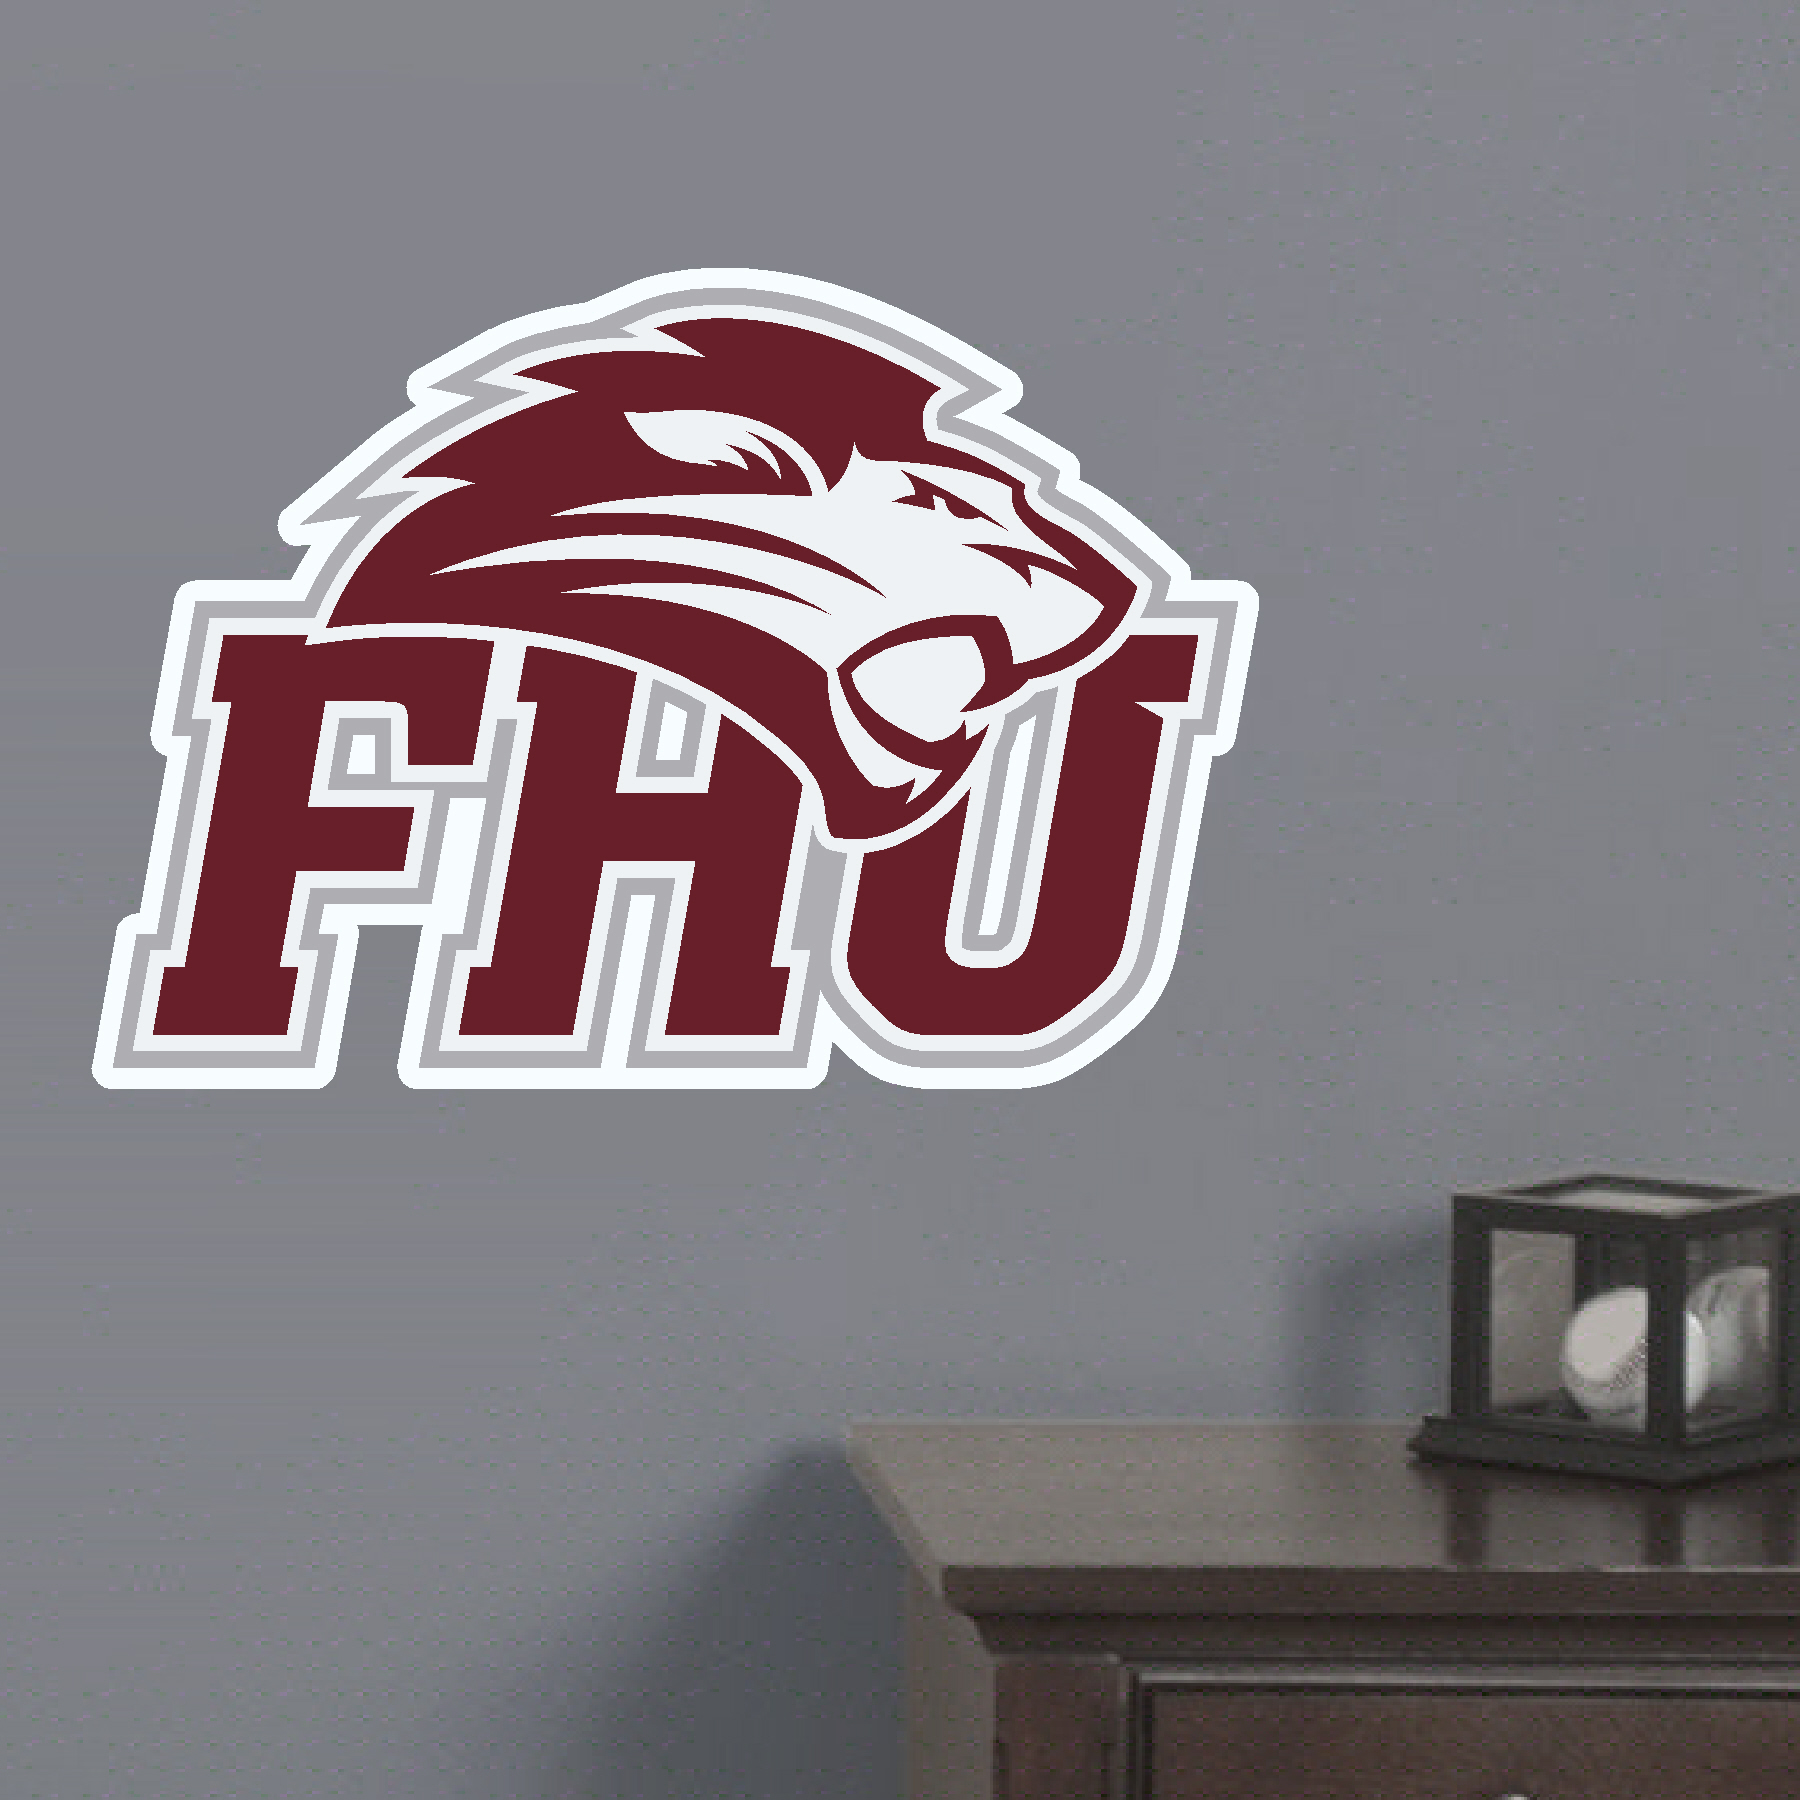 FHU Wall Sign